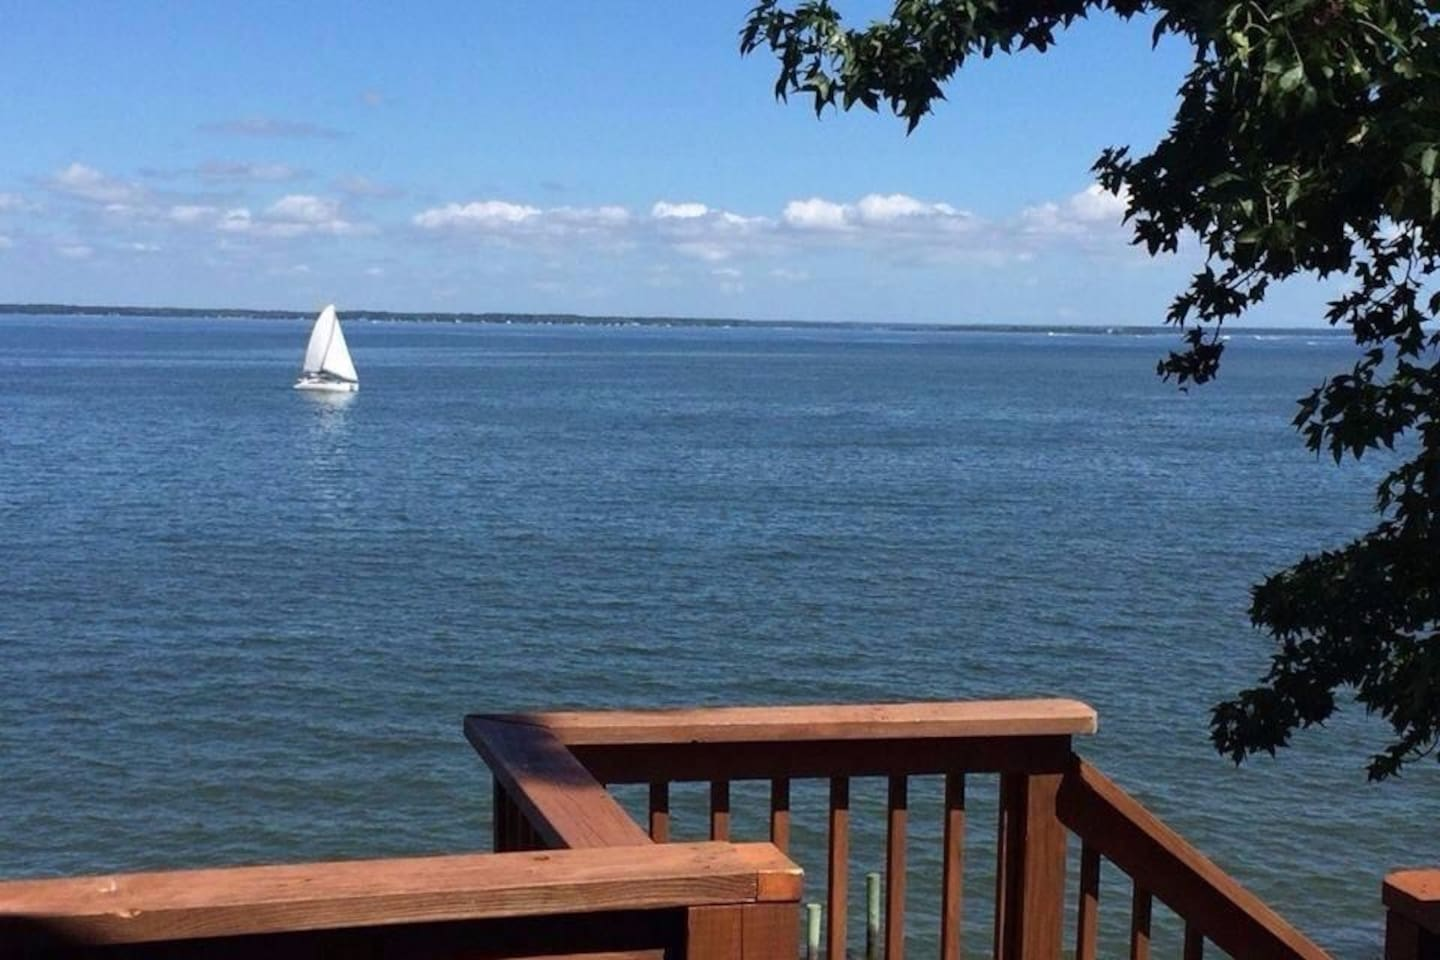 This is the most beautiful/ scenic view of the waters of the Northern Neck of Va. that you will find in the Northern Neck.  : )